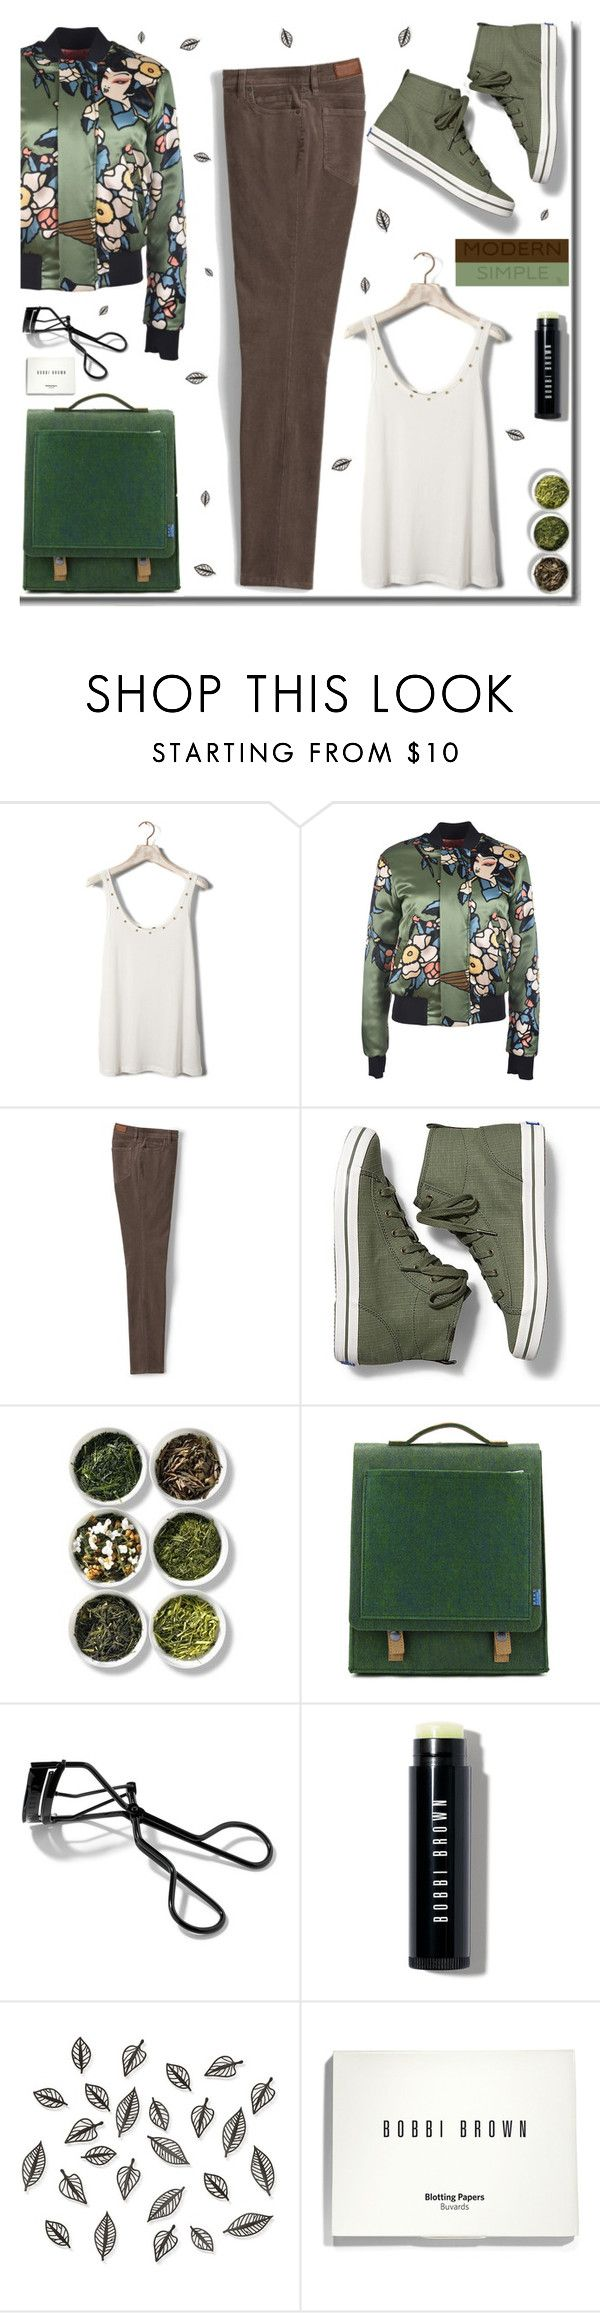 """🎀 #508  Simple & Modern Dsquared Jackets"" by wonderful-paradisaical ❤ liked on Polyvore featuring Pull&Bear, Dsquared2, Lands' End, Keds, Tea Collection, Supra, Bobbi Brown Cosmetics, Umbra, modern and outfit"